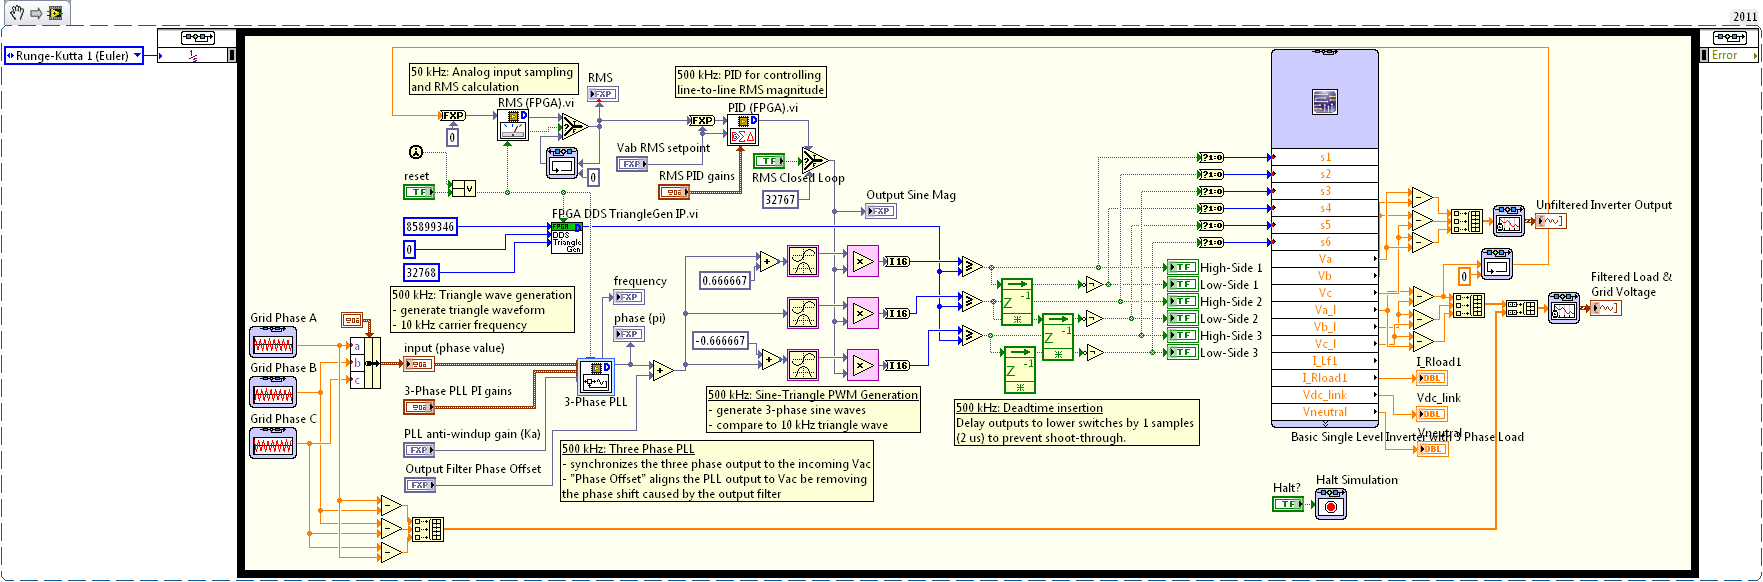 pi controller block diagram 1979 corvette stereo wiring complete system simulation of a 3-phase inverter using ni multisim and labview - national ...